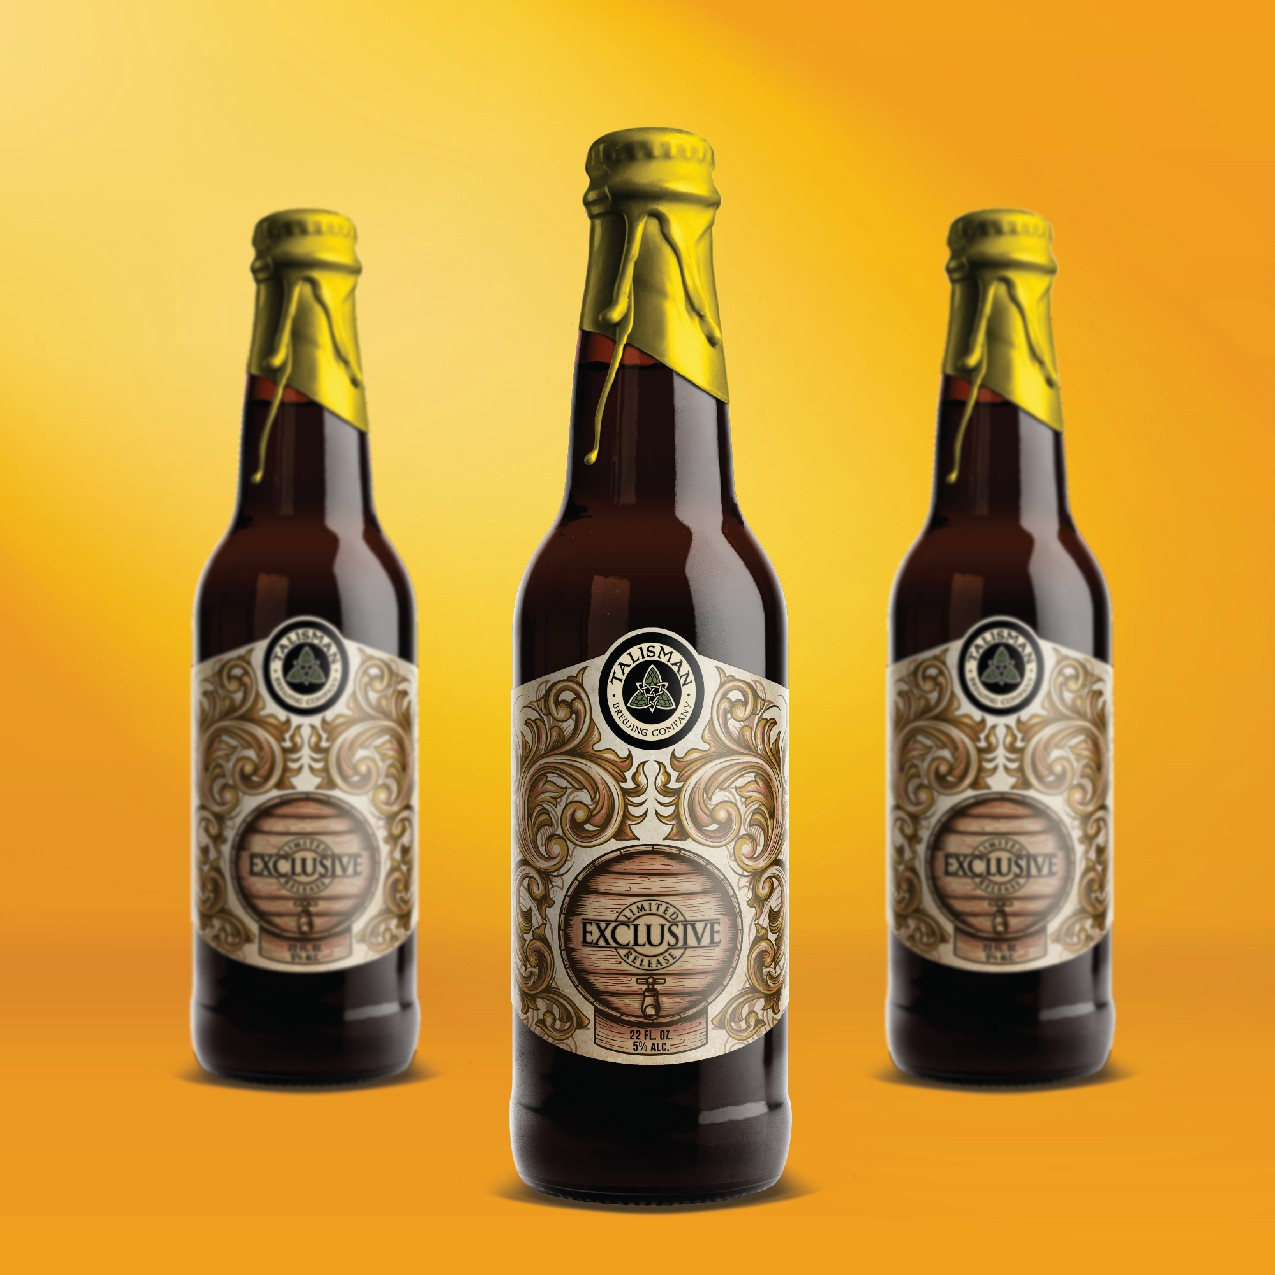 Limited Release label